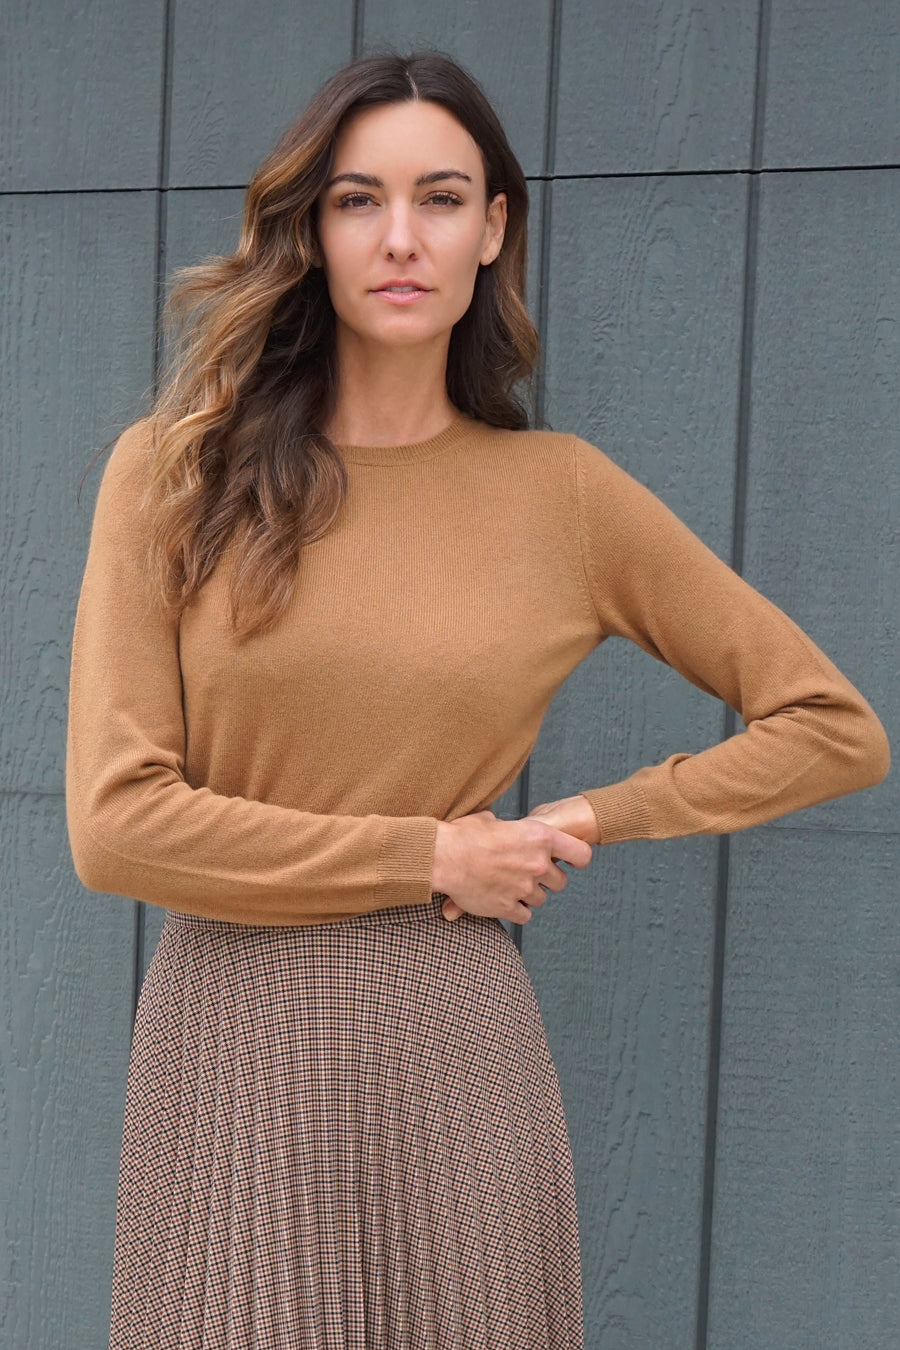 pine cashmere sydney women's 100% pure cashmere classic crewneck sweater in camel